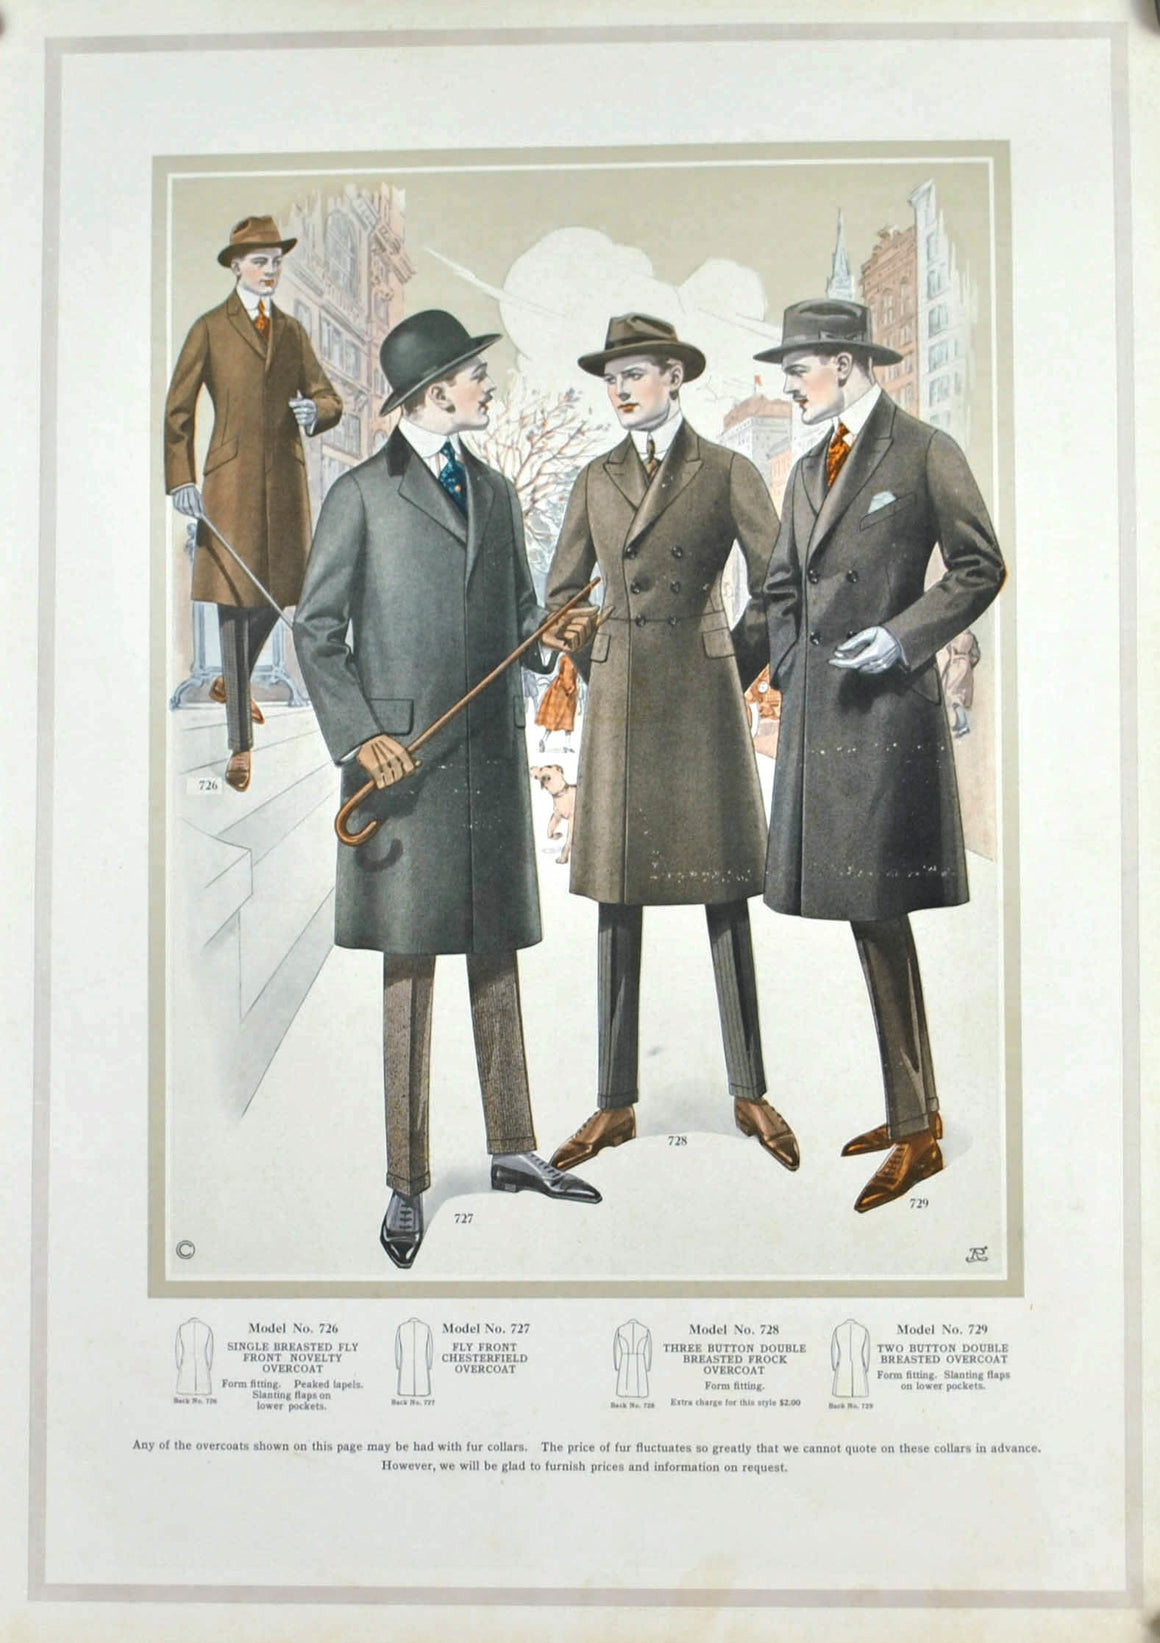 WWI Edward Rose Men's Taylor Fashion Plate Print Overcoat Collection B